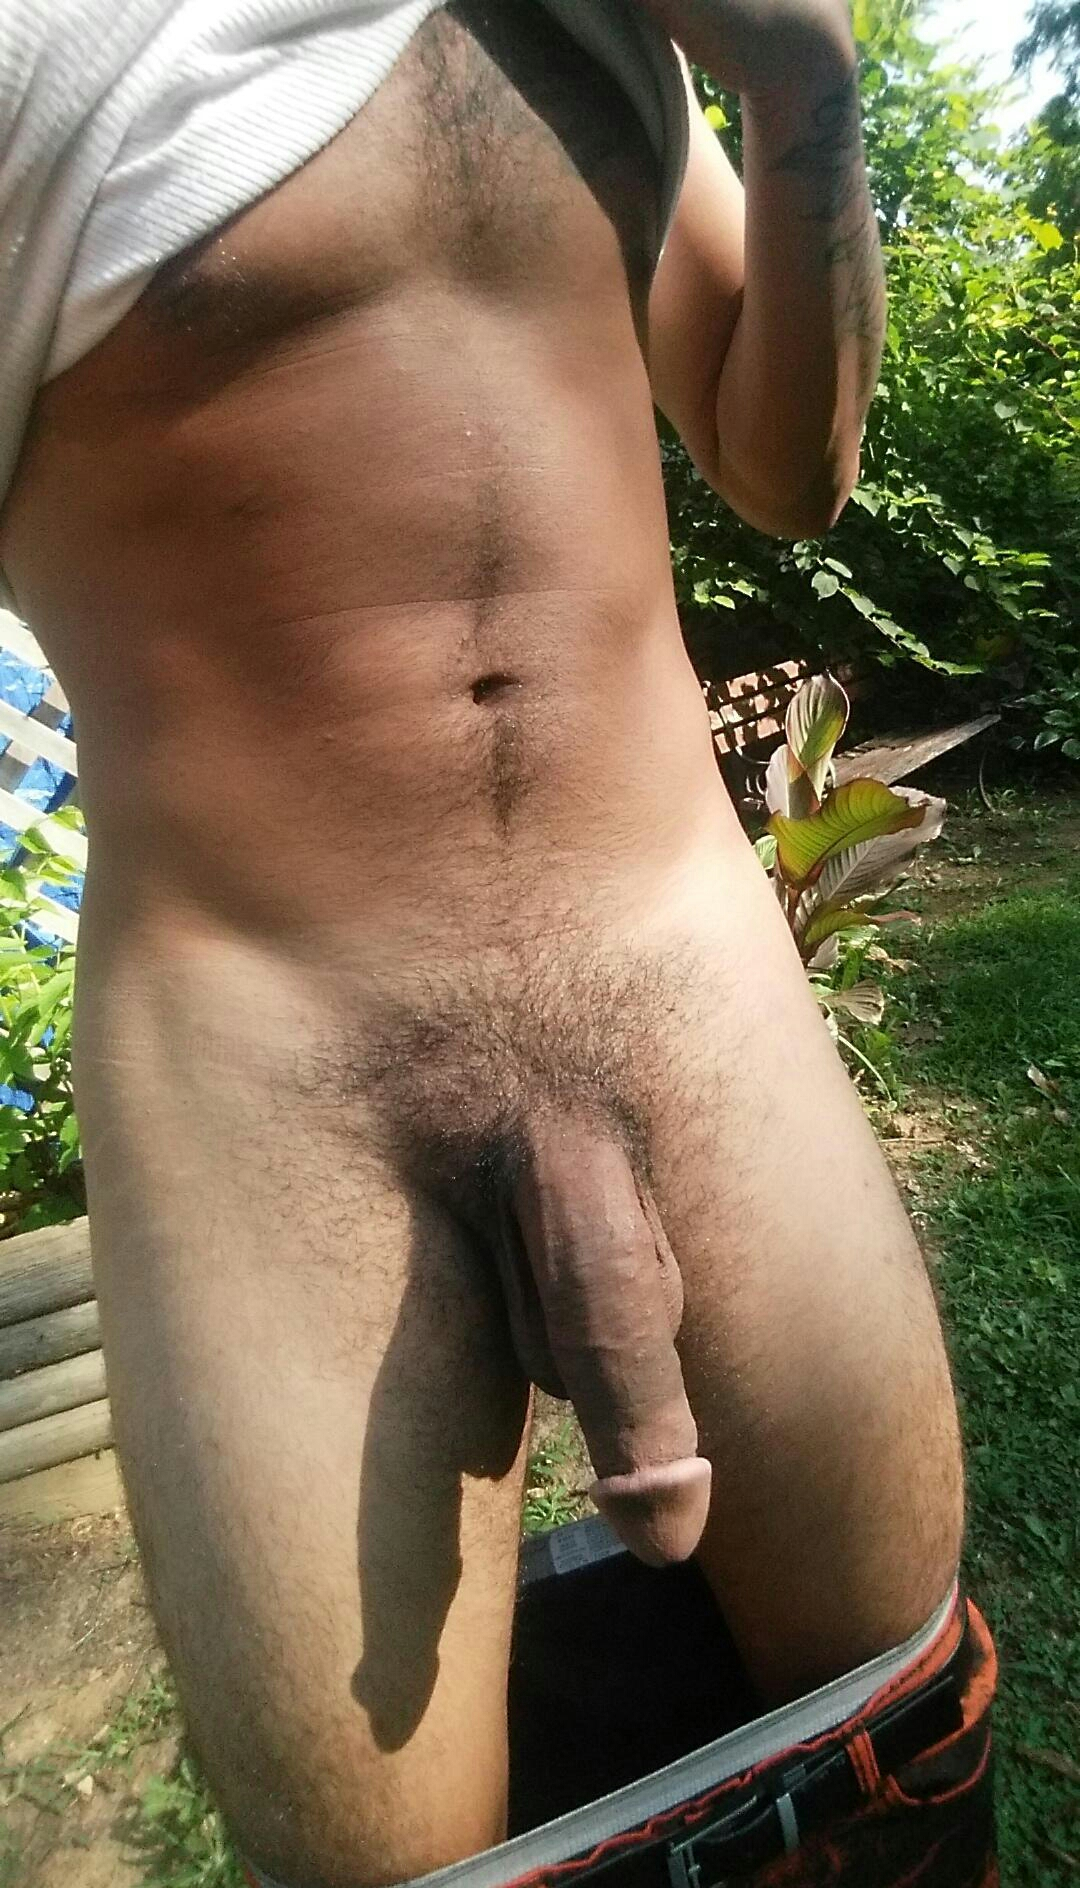 mature grosse bite mature et gay